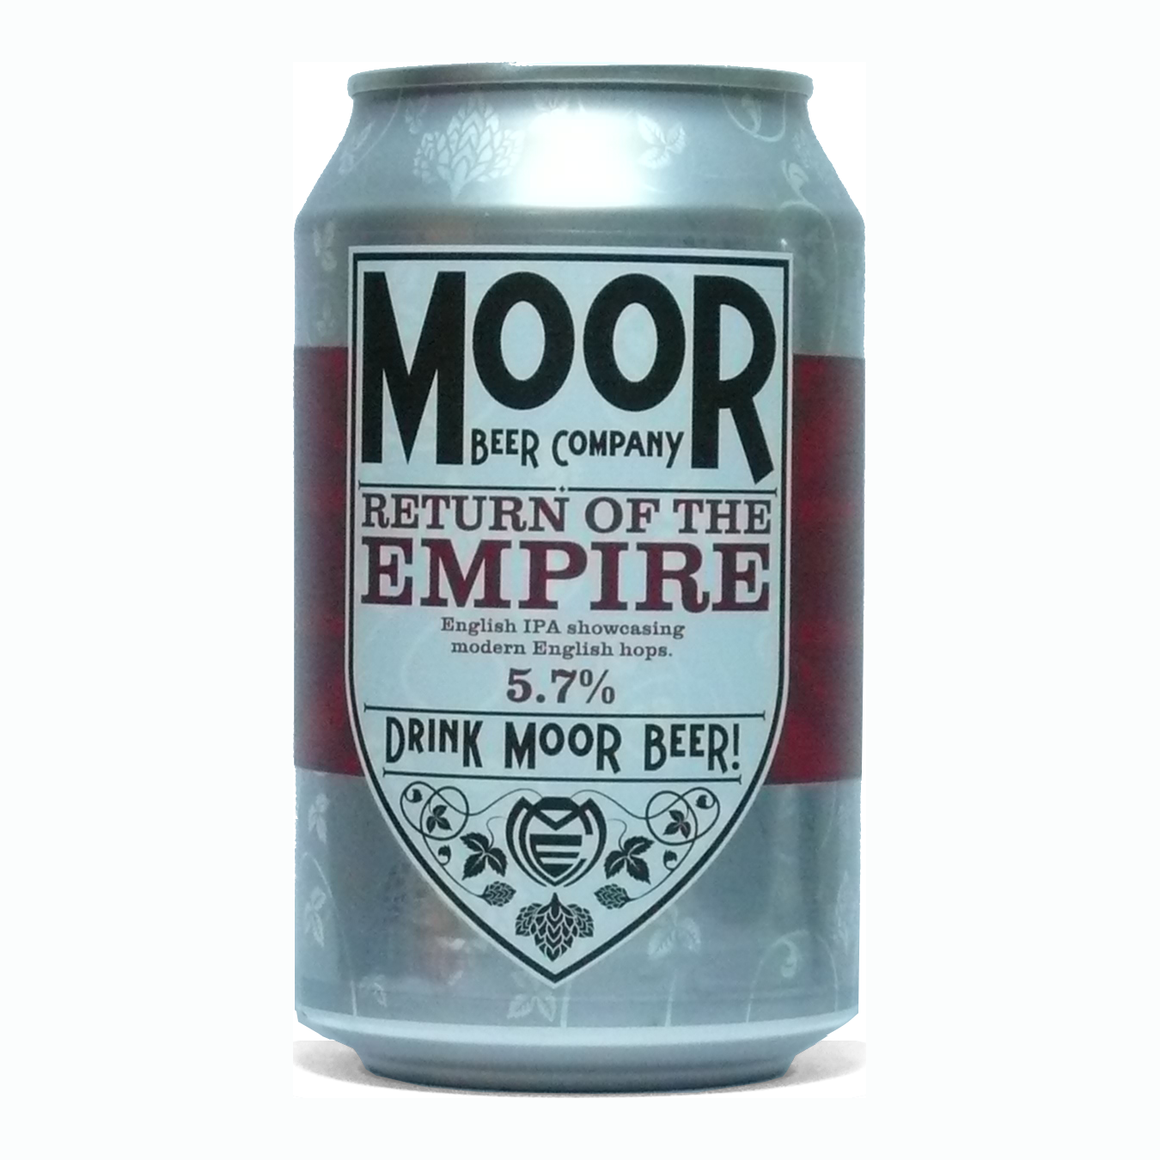 Moor Beer Company - Return of the Empire - English IPA - 330ml Can